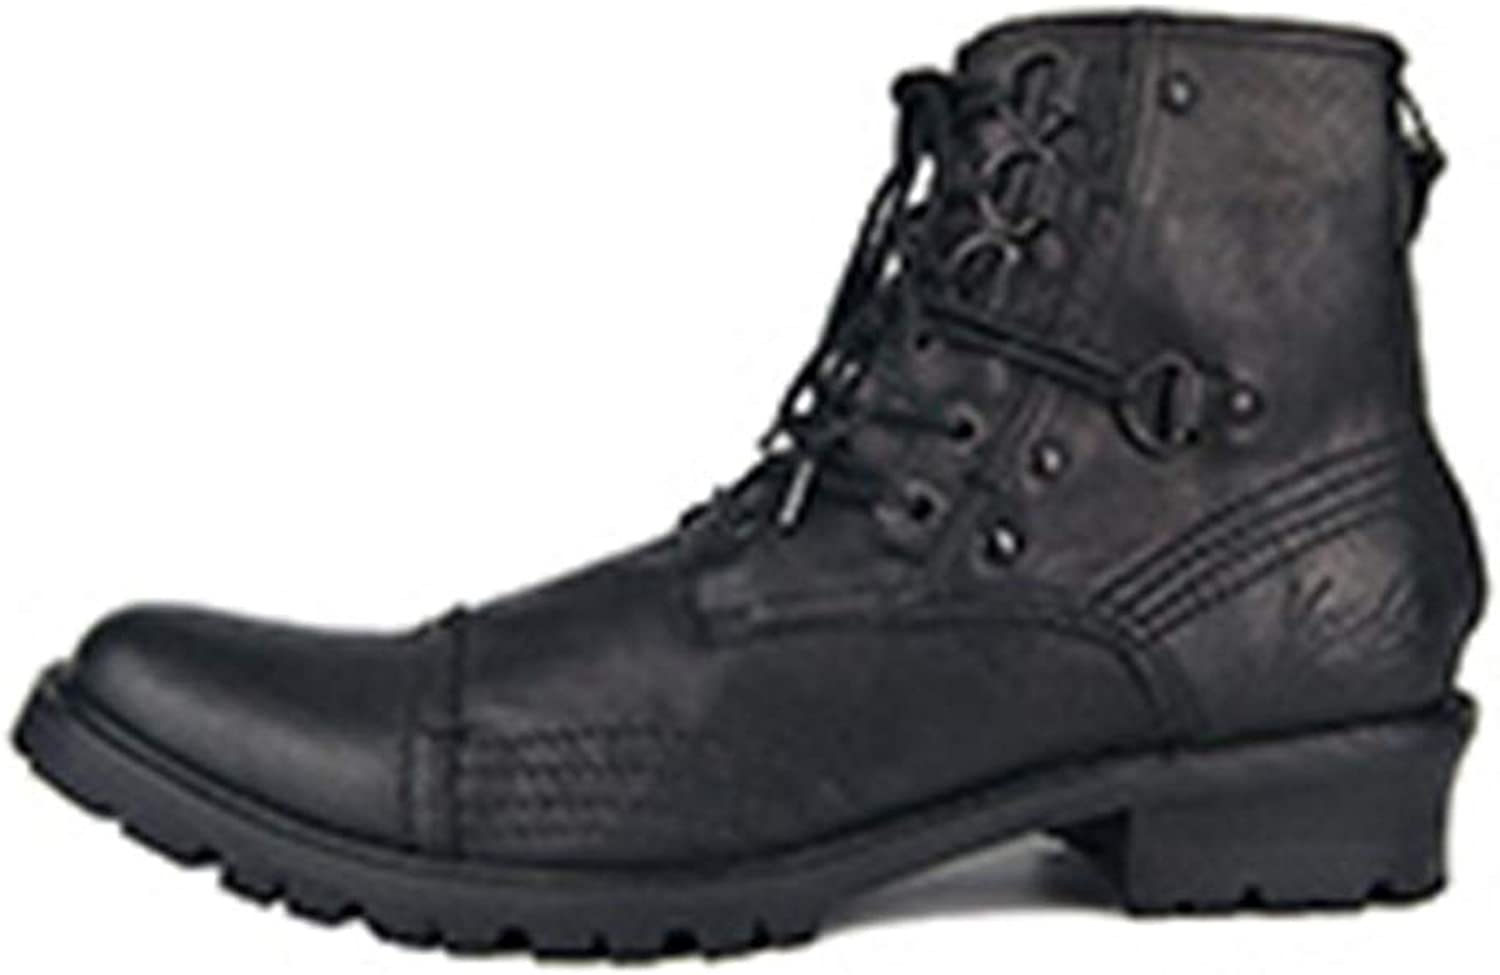 Men's Military Boot Genuine Leather Boots Ankle Martin Chelsea Boot Designer Leather shoes Footwear